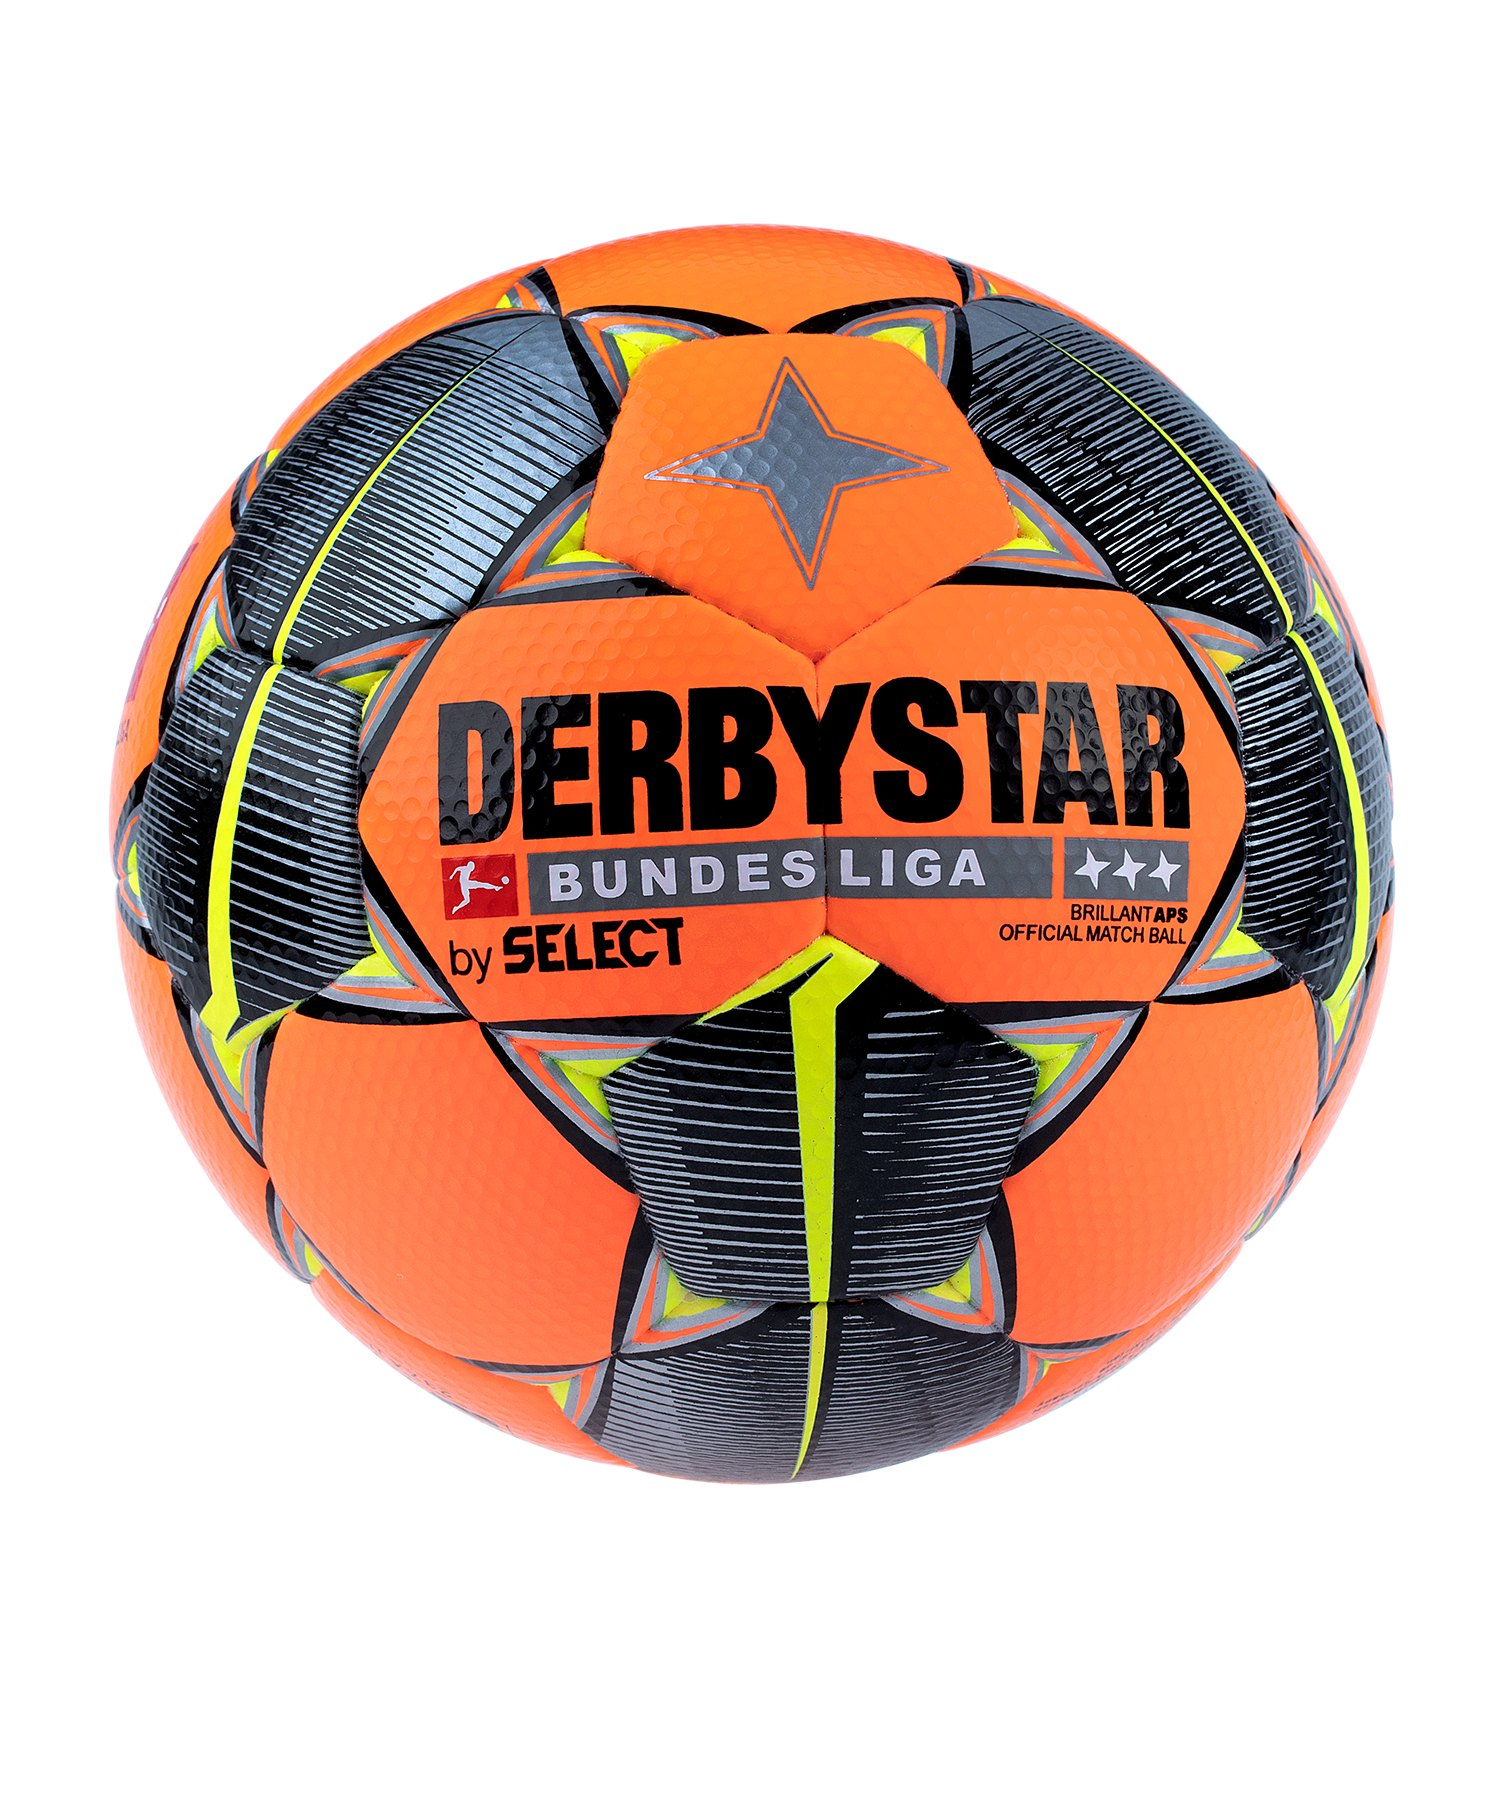 Derbystar Bundesliga Brillant APS Spielball Winter Orange F019 - orange